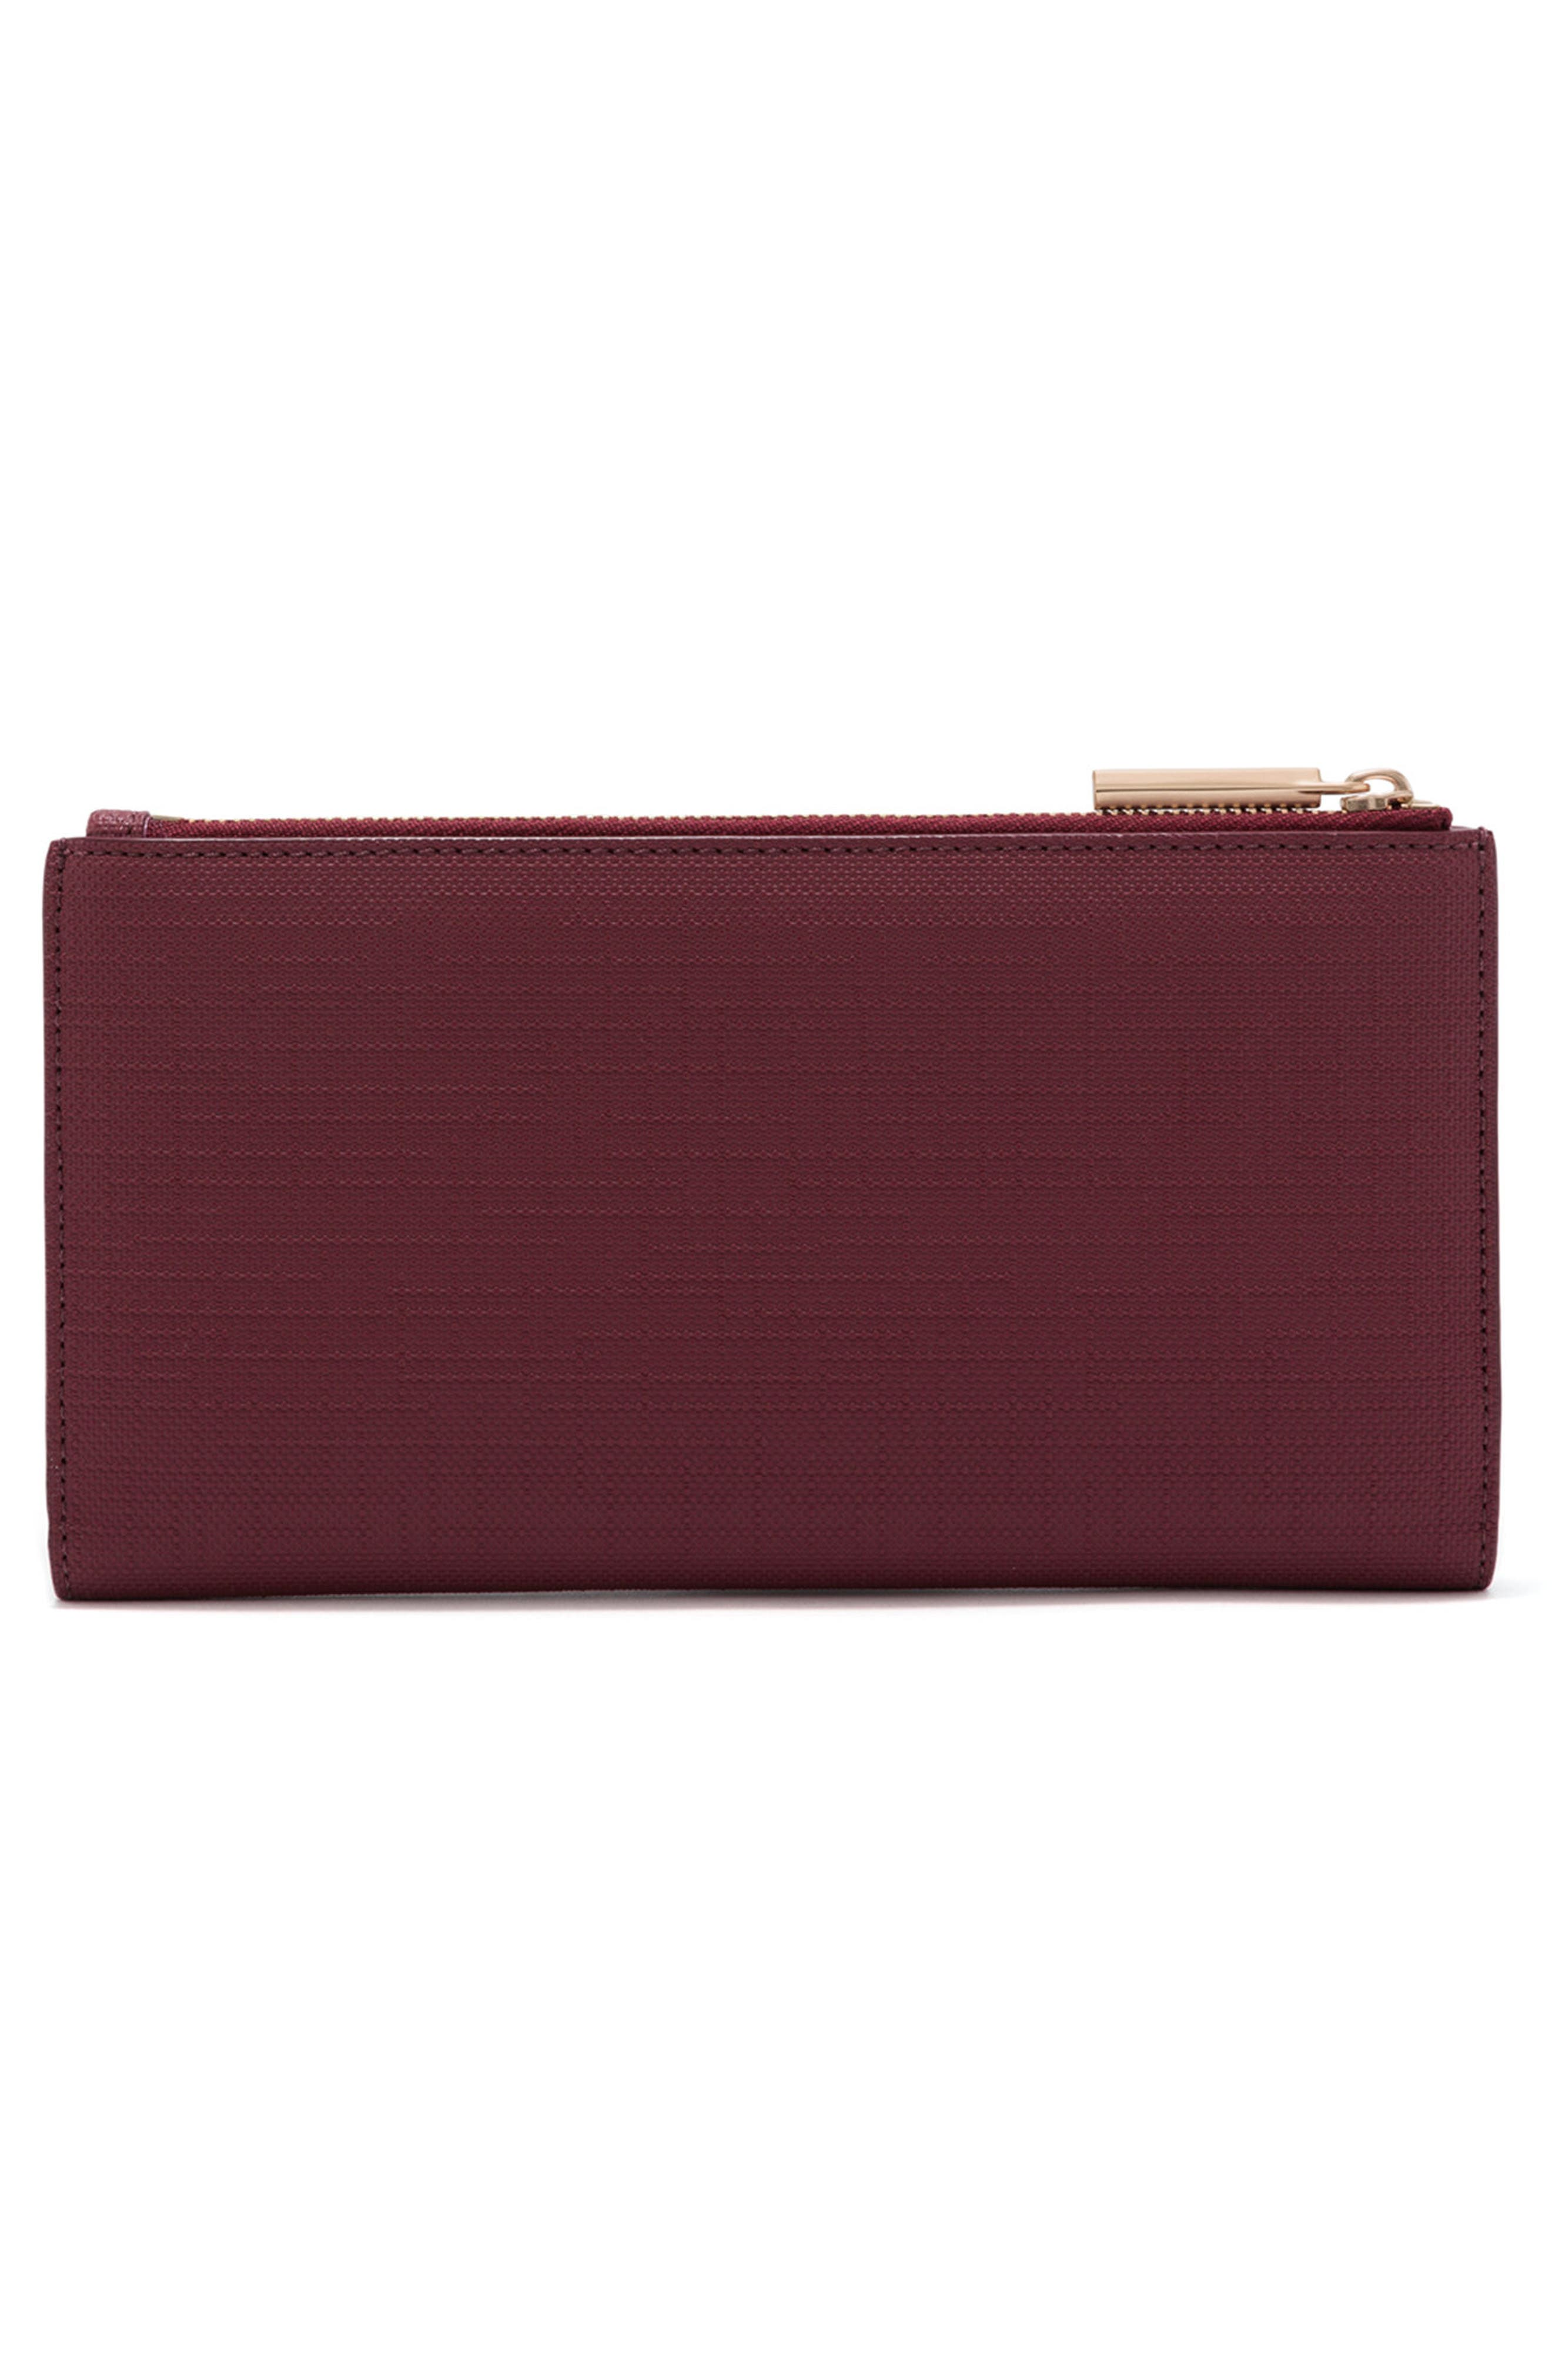 Signature Slim Coated Canvas Wallet,                             Alternate thumbnail 3, color,                             Syrah